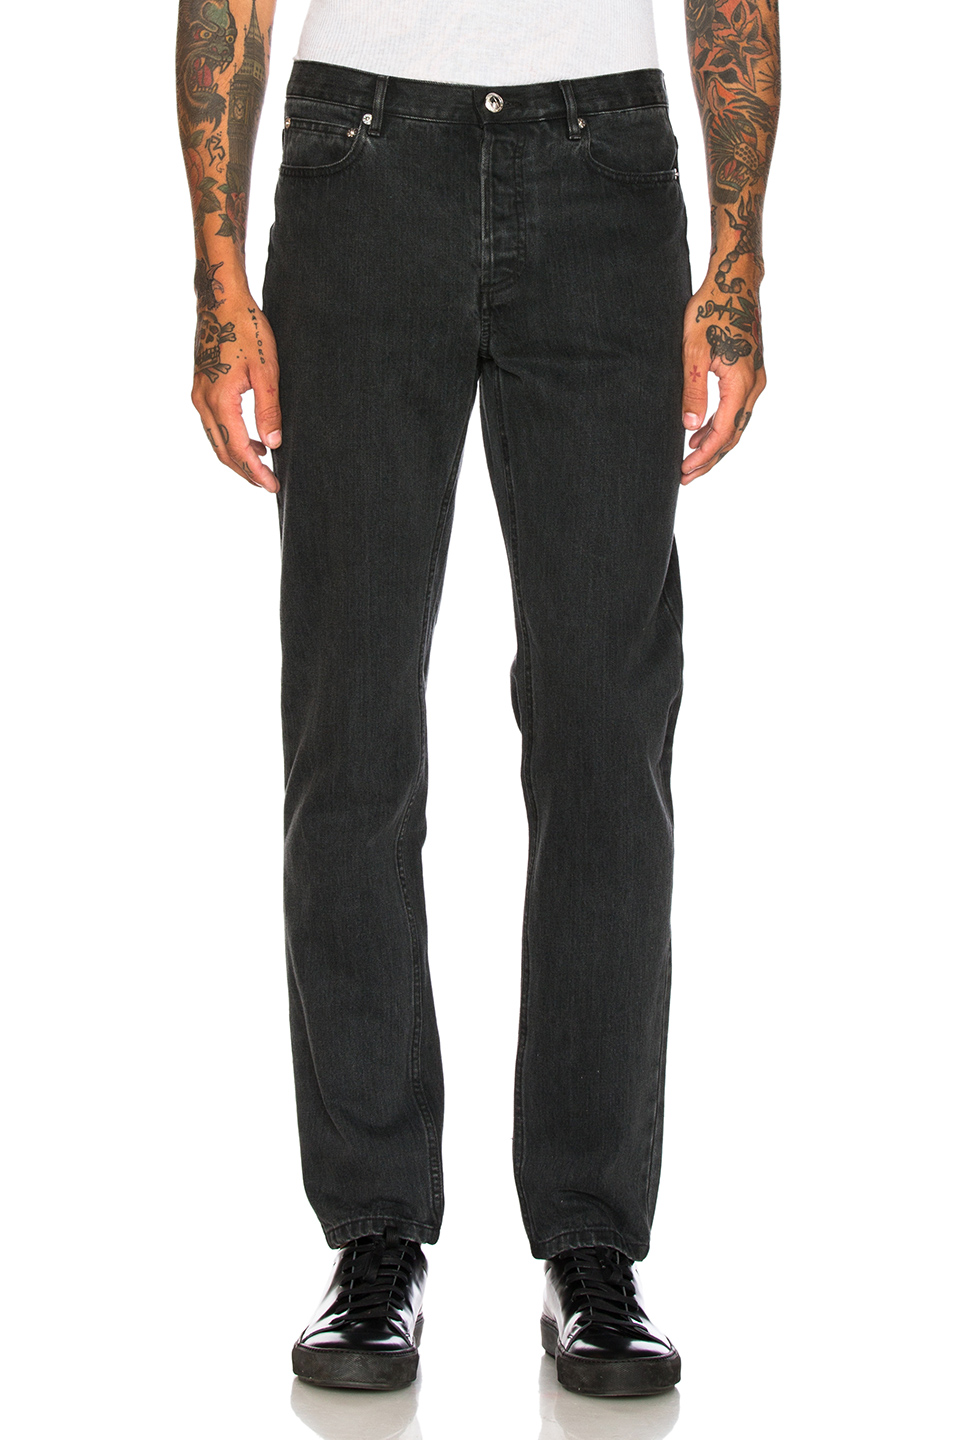 A.P.C. Low Standard in Black